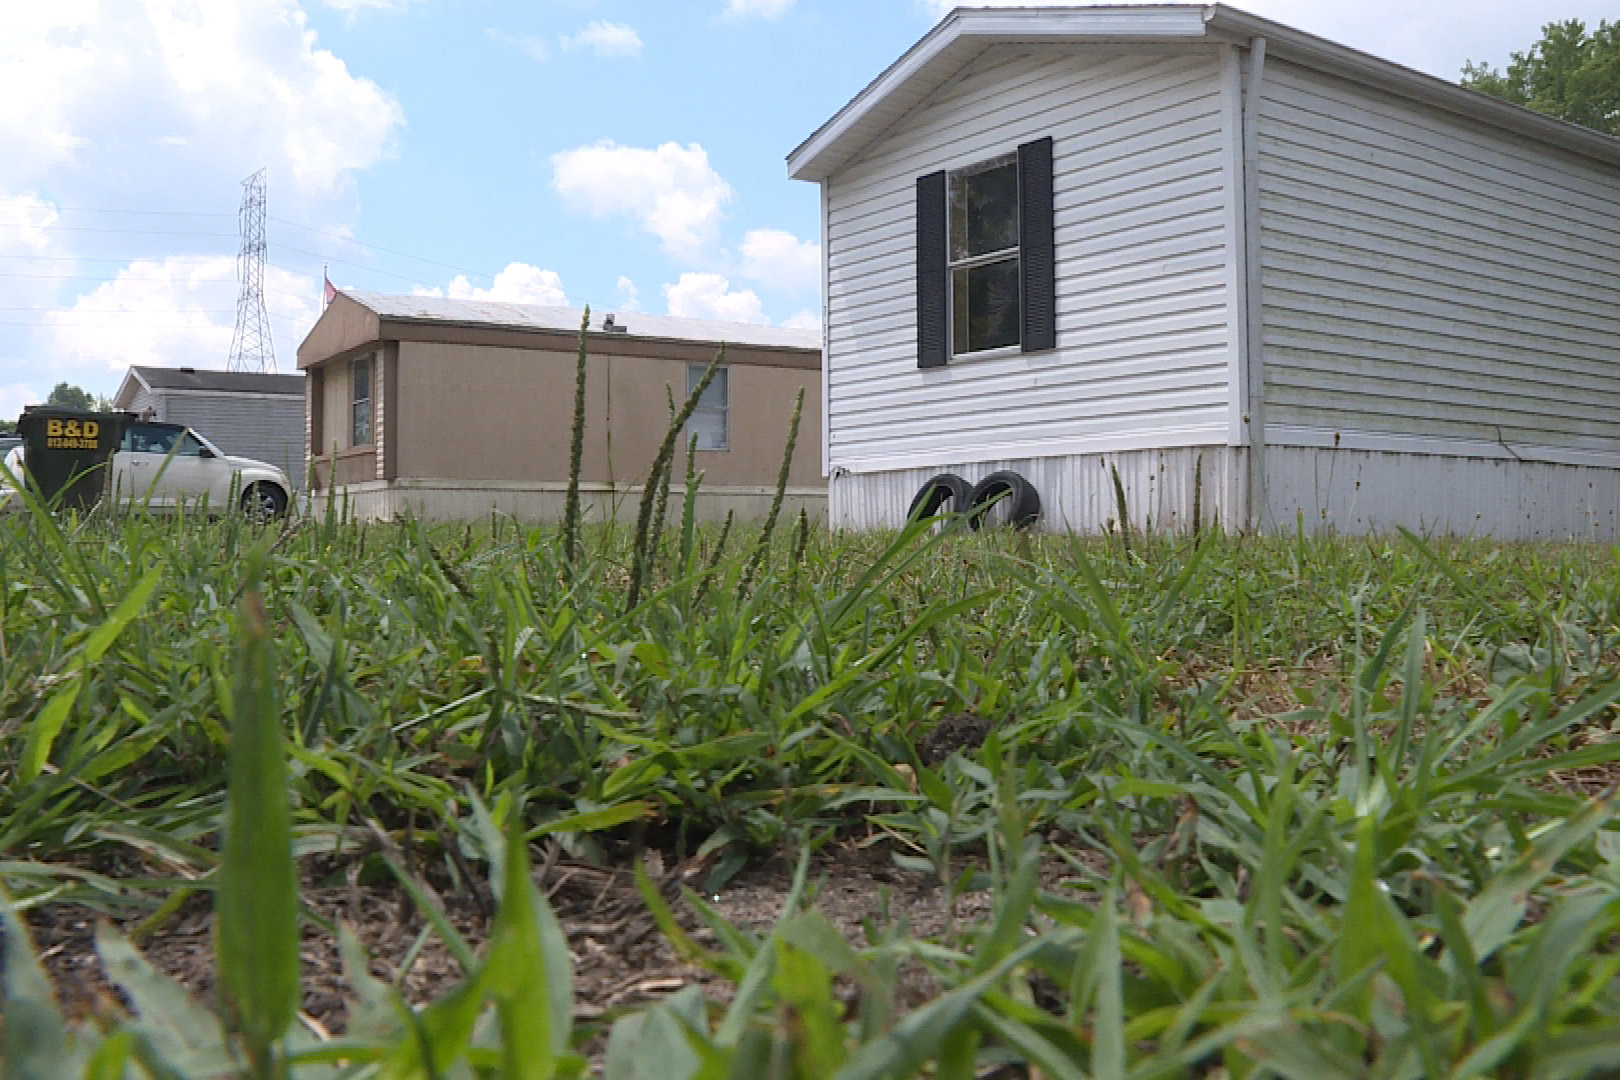 Lawrence County Collects Nearly $5,000 After Announcing Mobile Home on homes for 100 dollars, homes for 700 dollars, homes for 200 dollars, homes for 500 dollars, homes for 10000 dollars, homes for 2000 dollars,